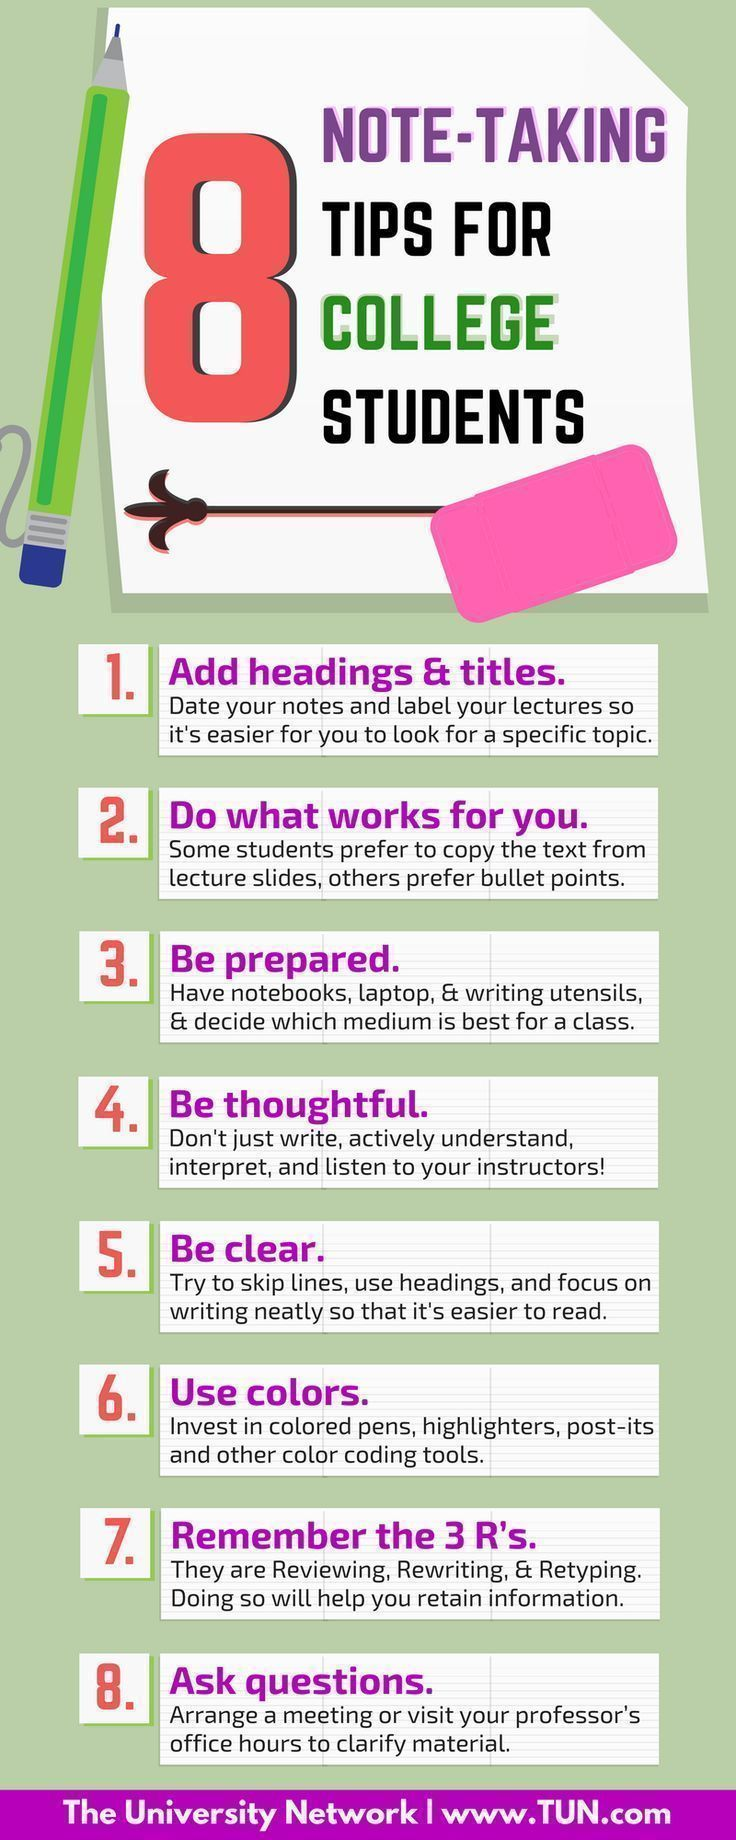 8 Note Taking Tips for College Students Conseils d'étude scolaire  School study tips